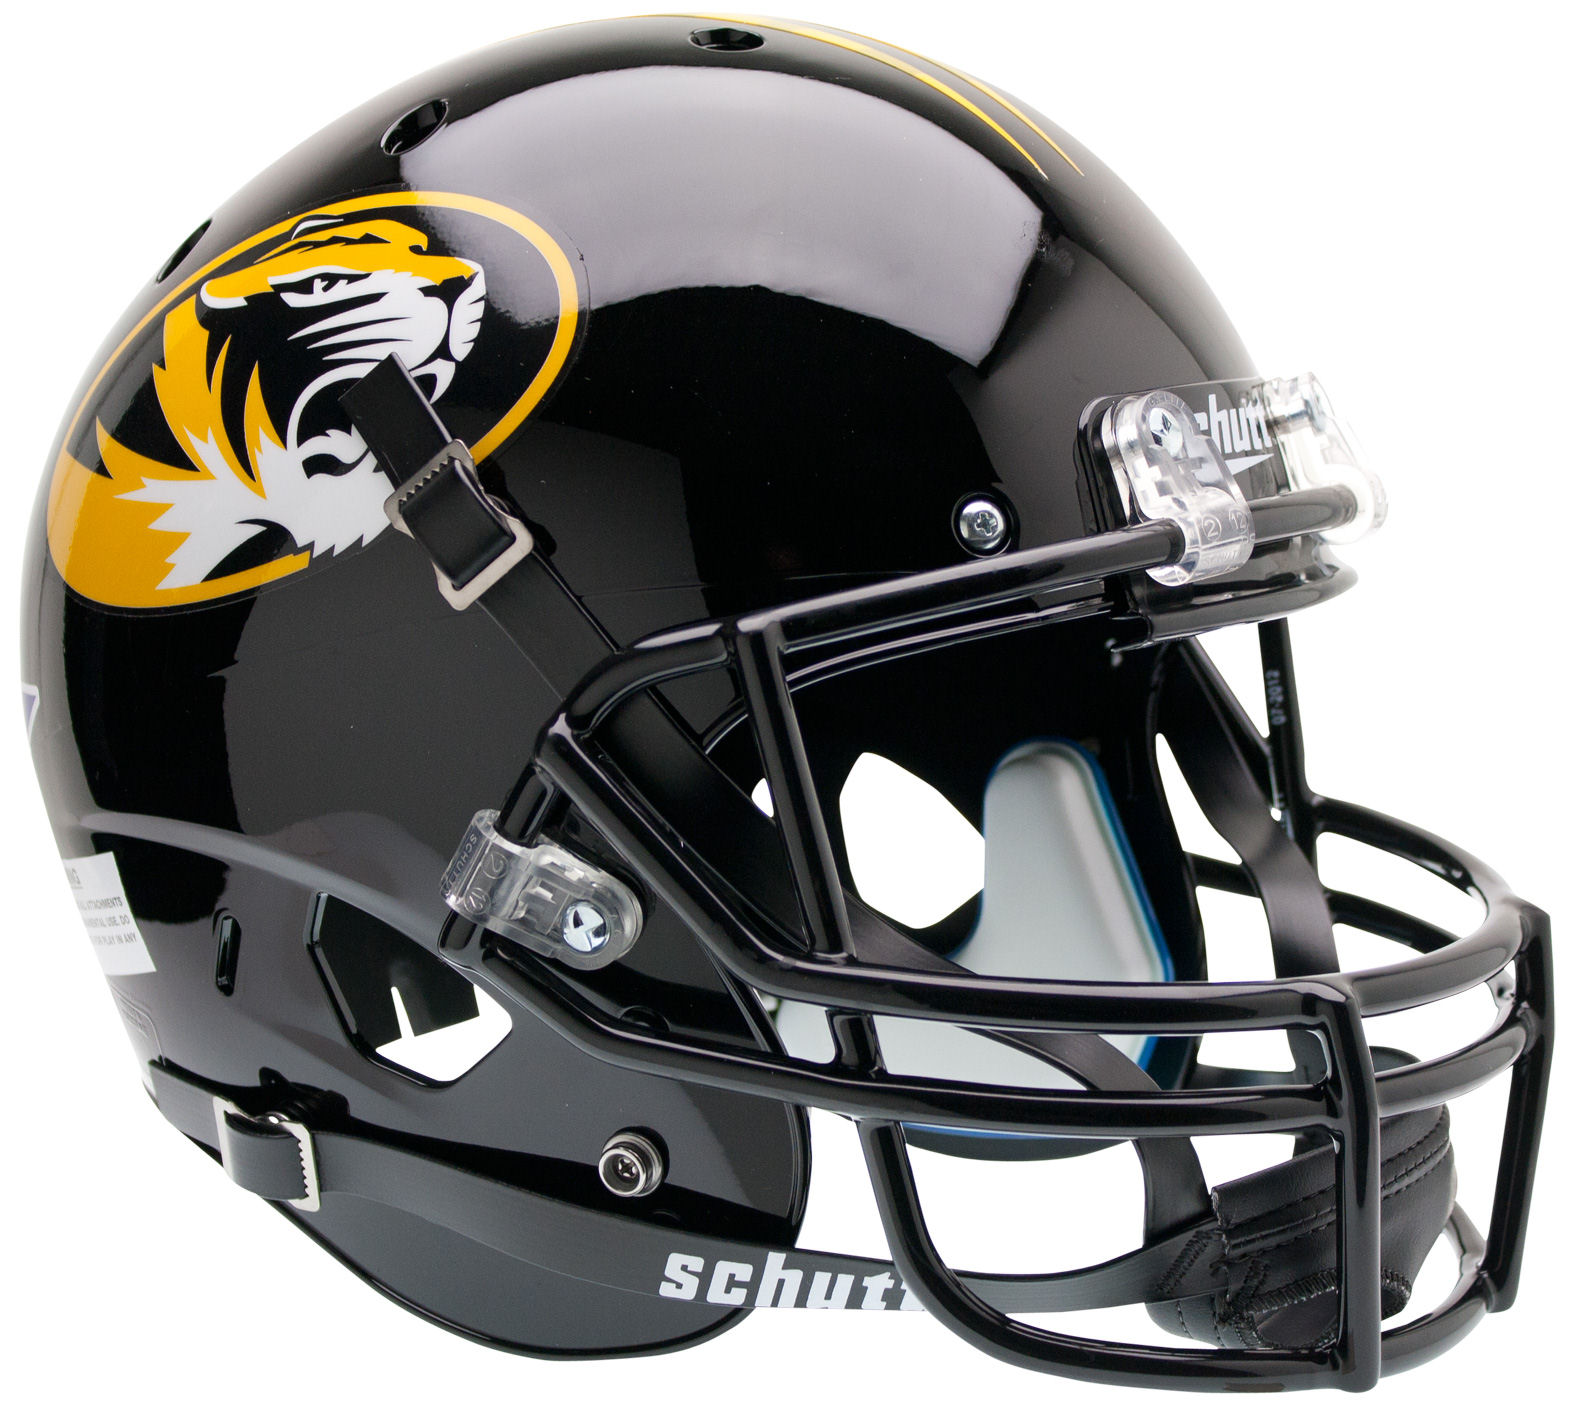 Missouri Tigers Full XP Replica Football Helmet Schutt